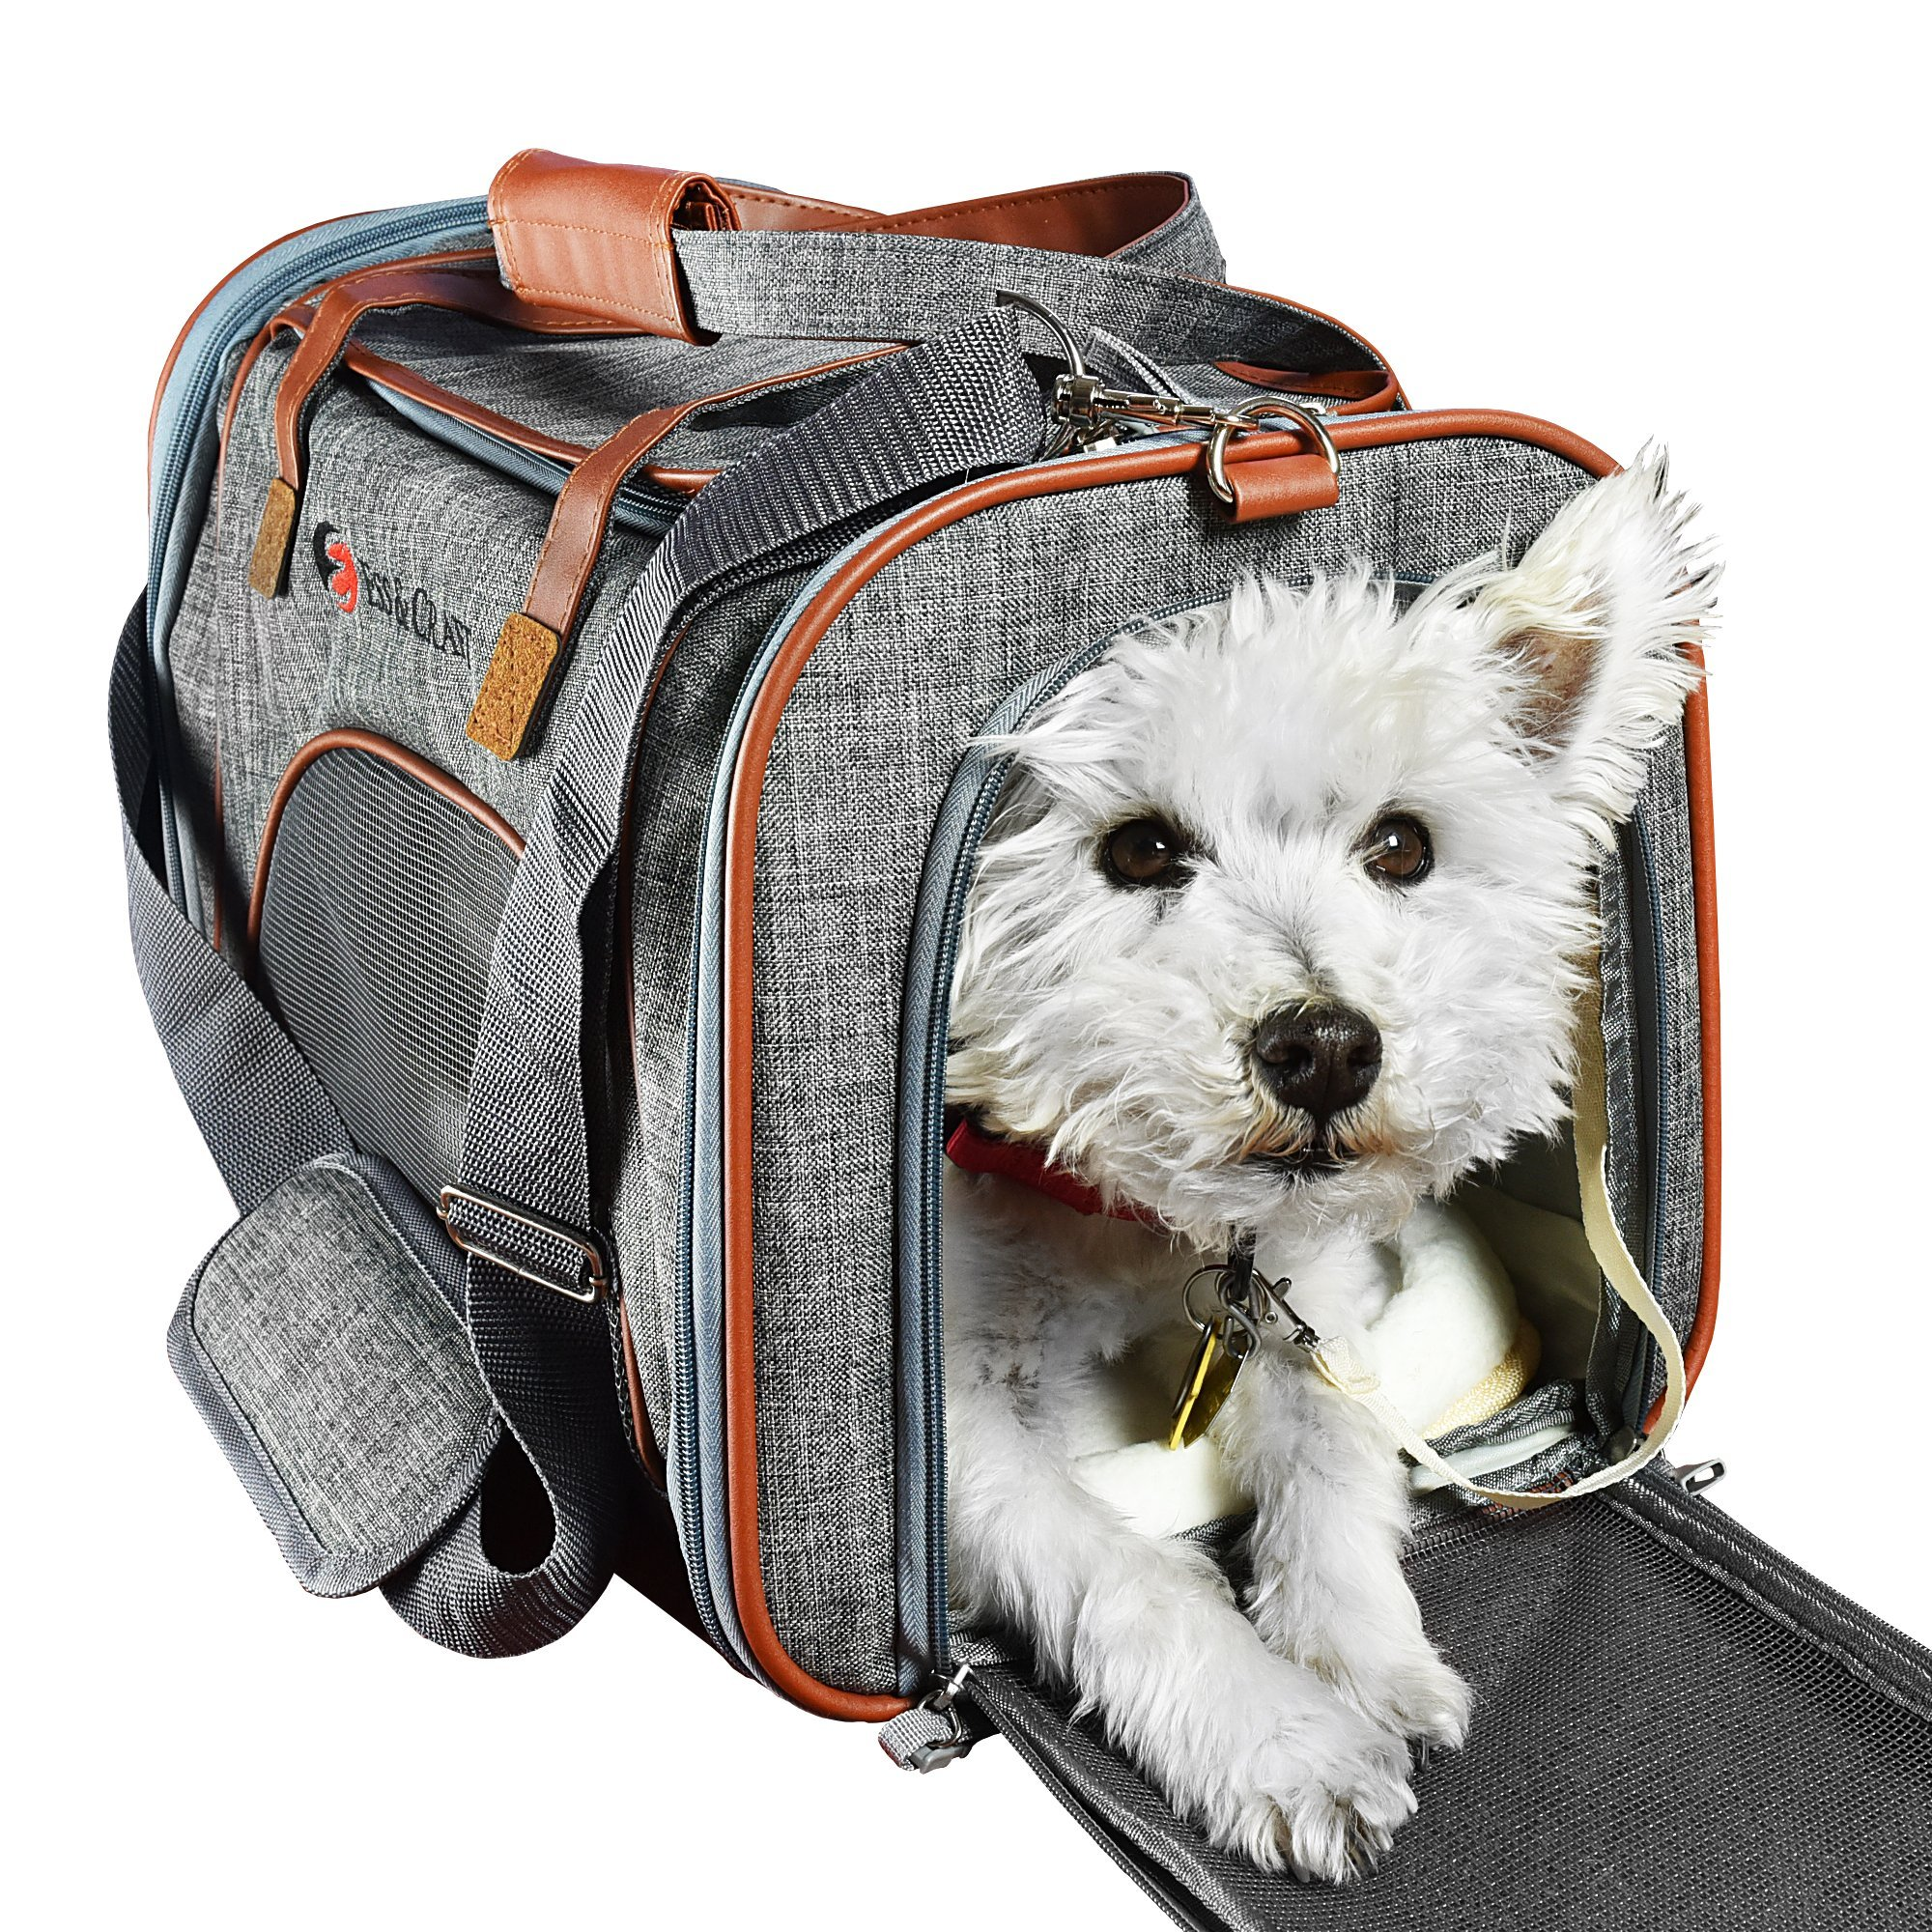 Ess And Craft Pet Carrier Airline Approved | Side Loaded Travel Bag With Sturdy Bottom & Fleece Cushion | Ventilated Pouch With Faux Leather Top Handle & Zipper Locks | For Dogs, Cats, Small Pets